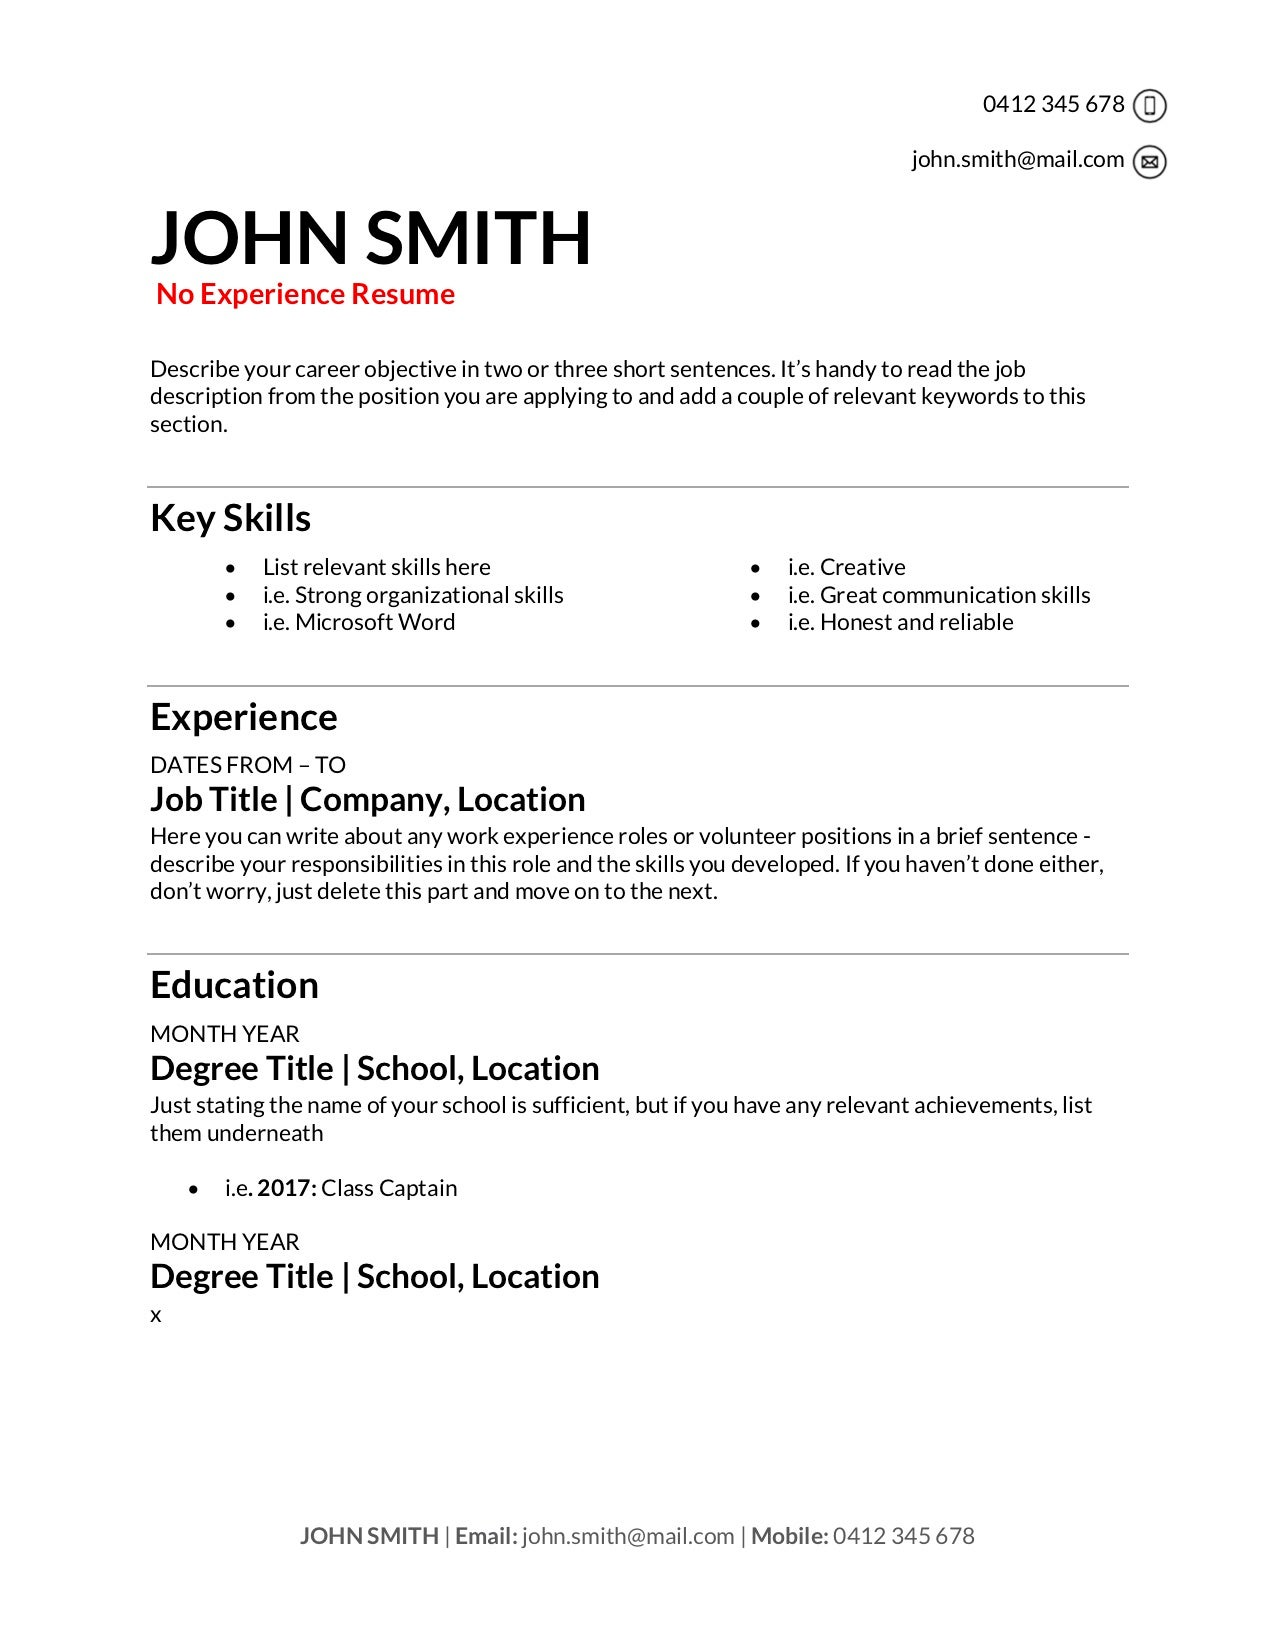 free resume templates to write in training au for first time job seekers no experience Resume Free Resume Templates For First Time Job Seekers